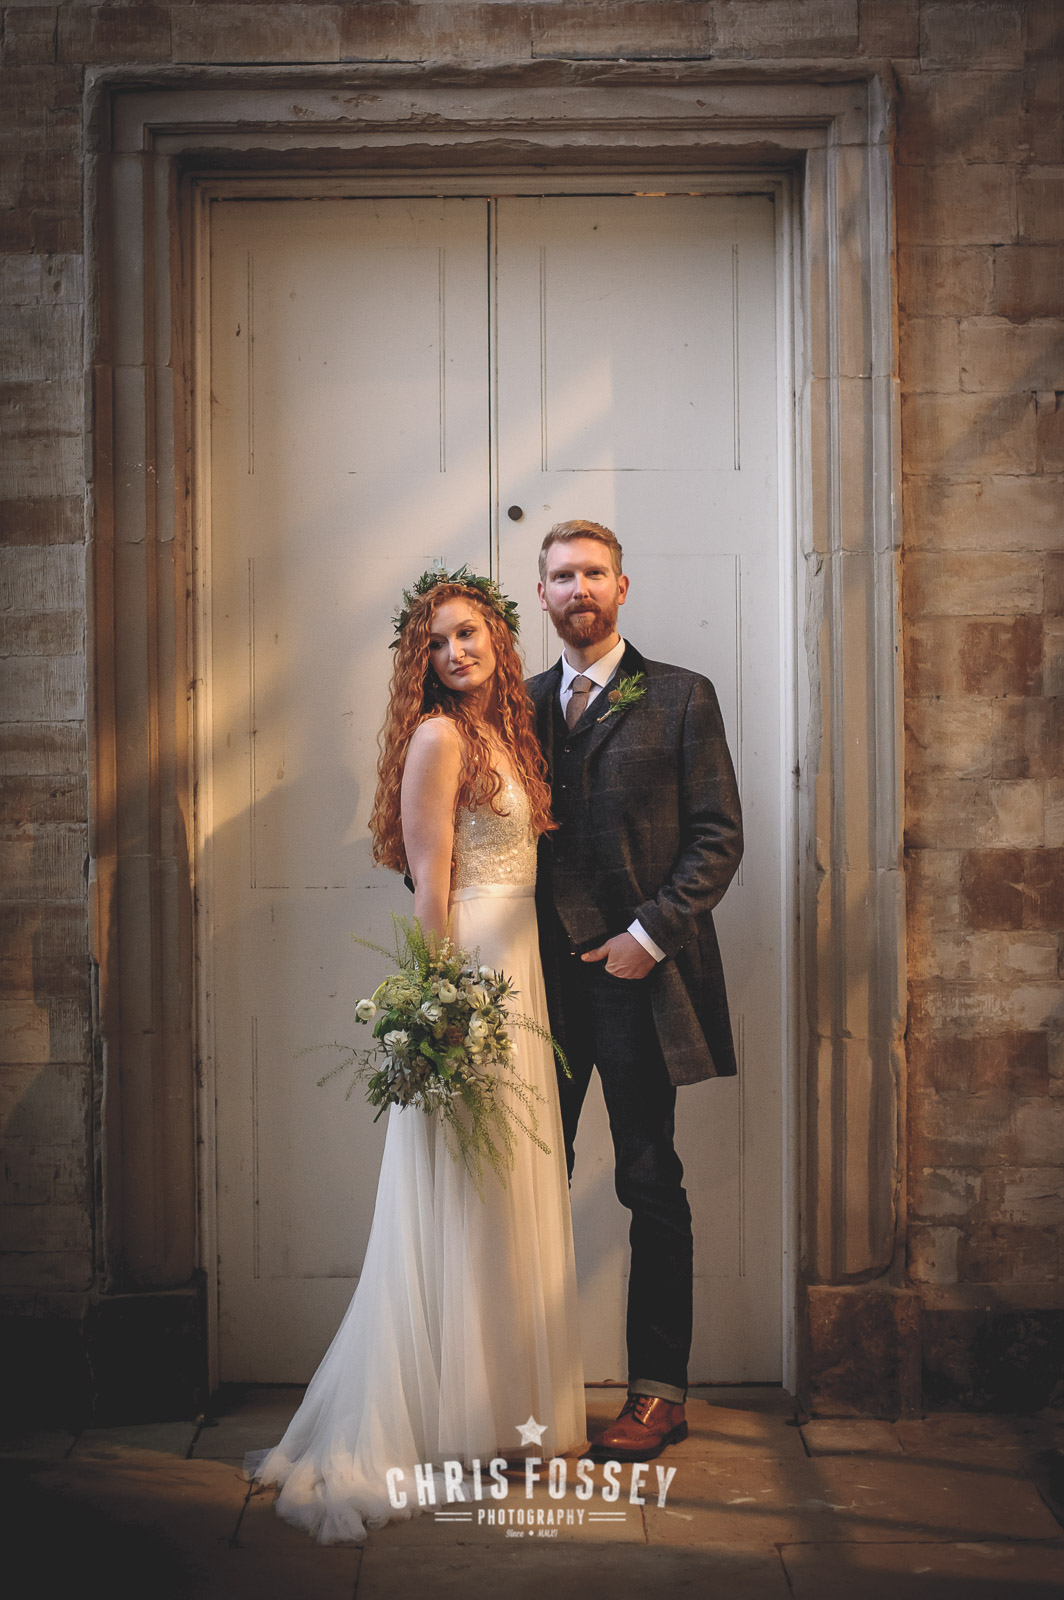 Compton Verney Wedding Photography Warwickshire Wedding Photos by Chris Fossey Photography